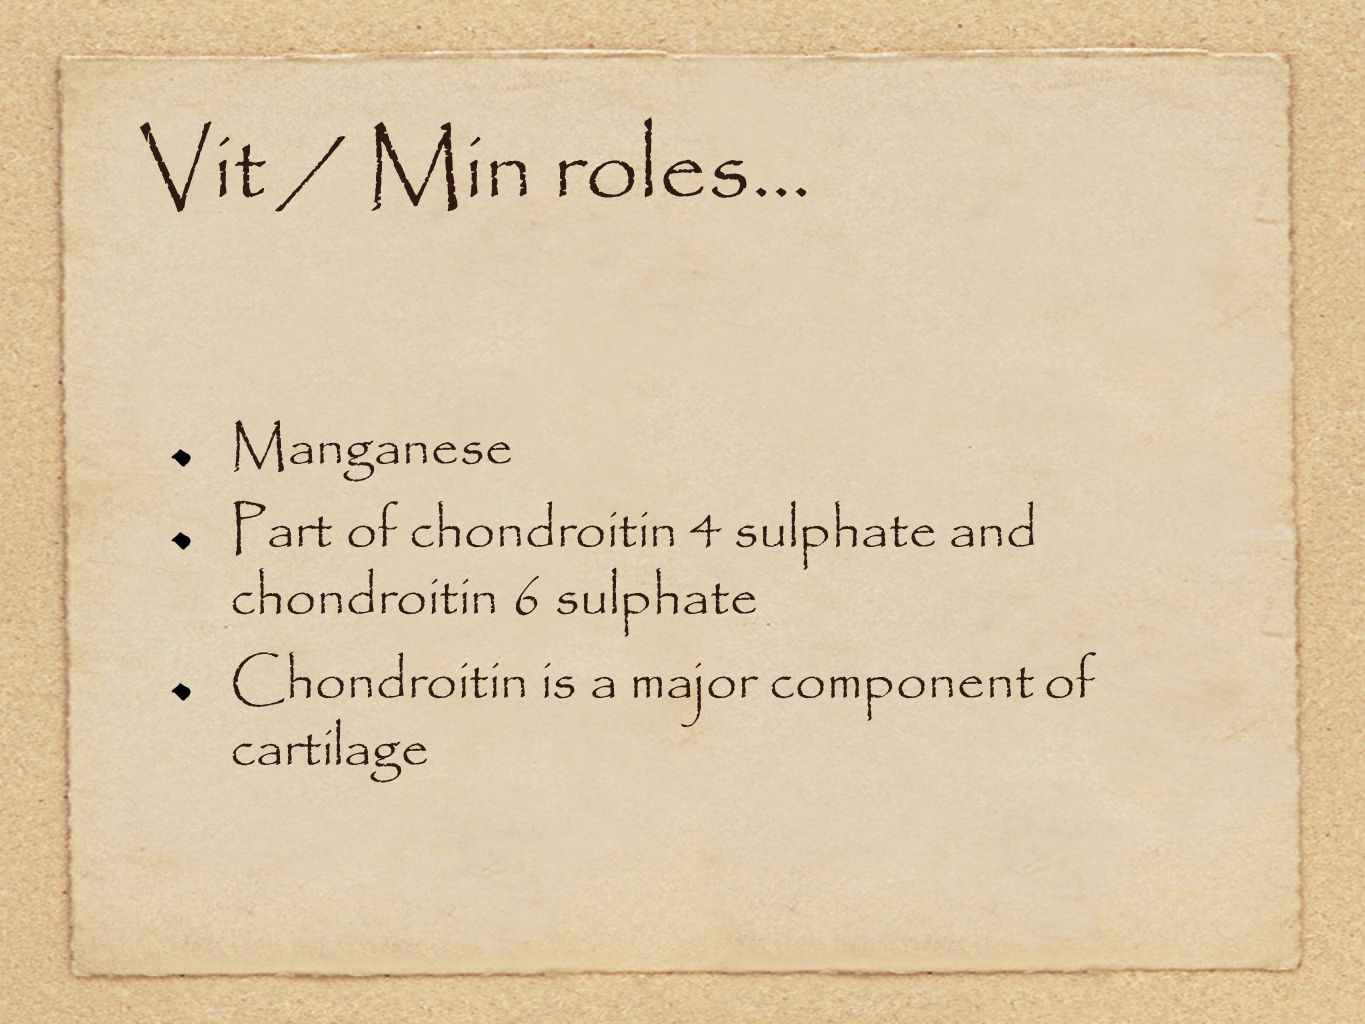 Vit / Min roles... Manganese Part of chondroitin 4 sulphate and chondroitin 6 sulphate Chondroitin is a major component of cartilage